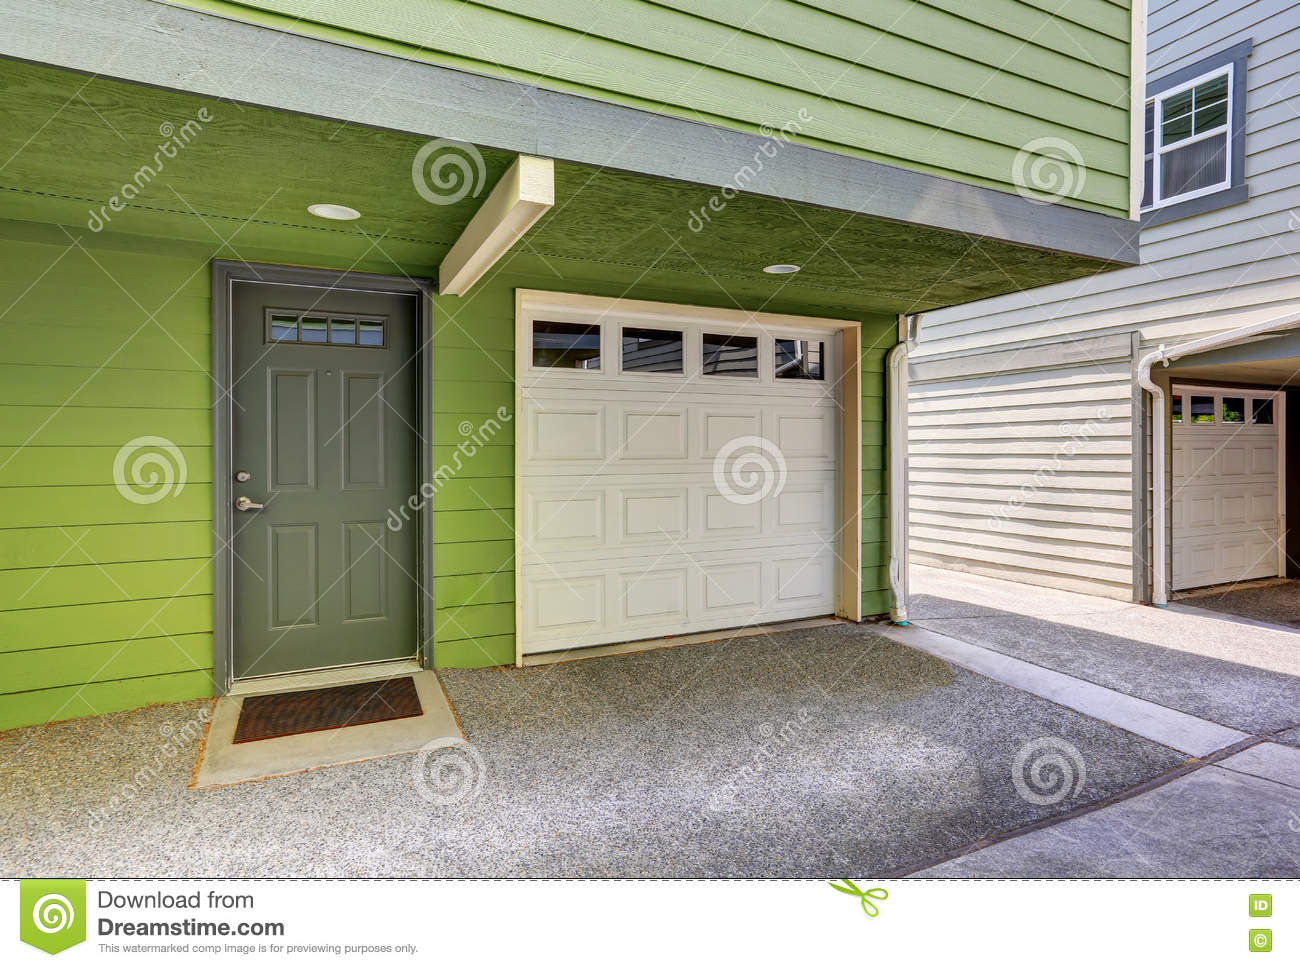 Small Entrance Porch And Garage Door Of Duplex House. Small Entrance Porch  And Garage Door